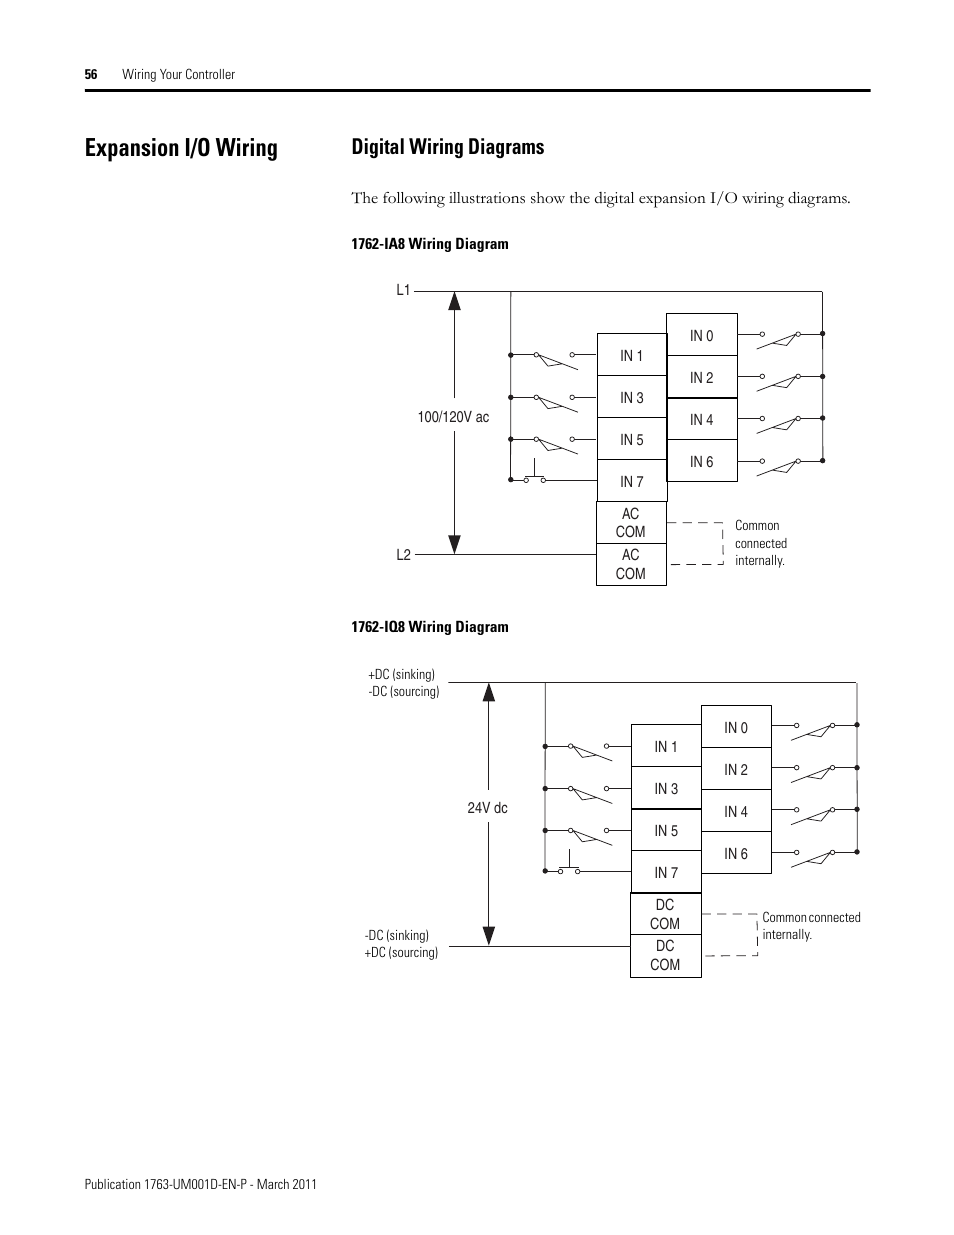 Expansion i/o wiring, Digital wiring diagrams | Rockwell Automation 1763 MicroLogix  1100 Programmable Controllers User Manual User Manual | Page 58 / 256